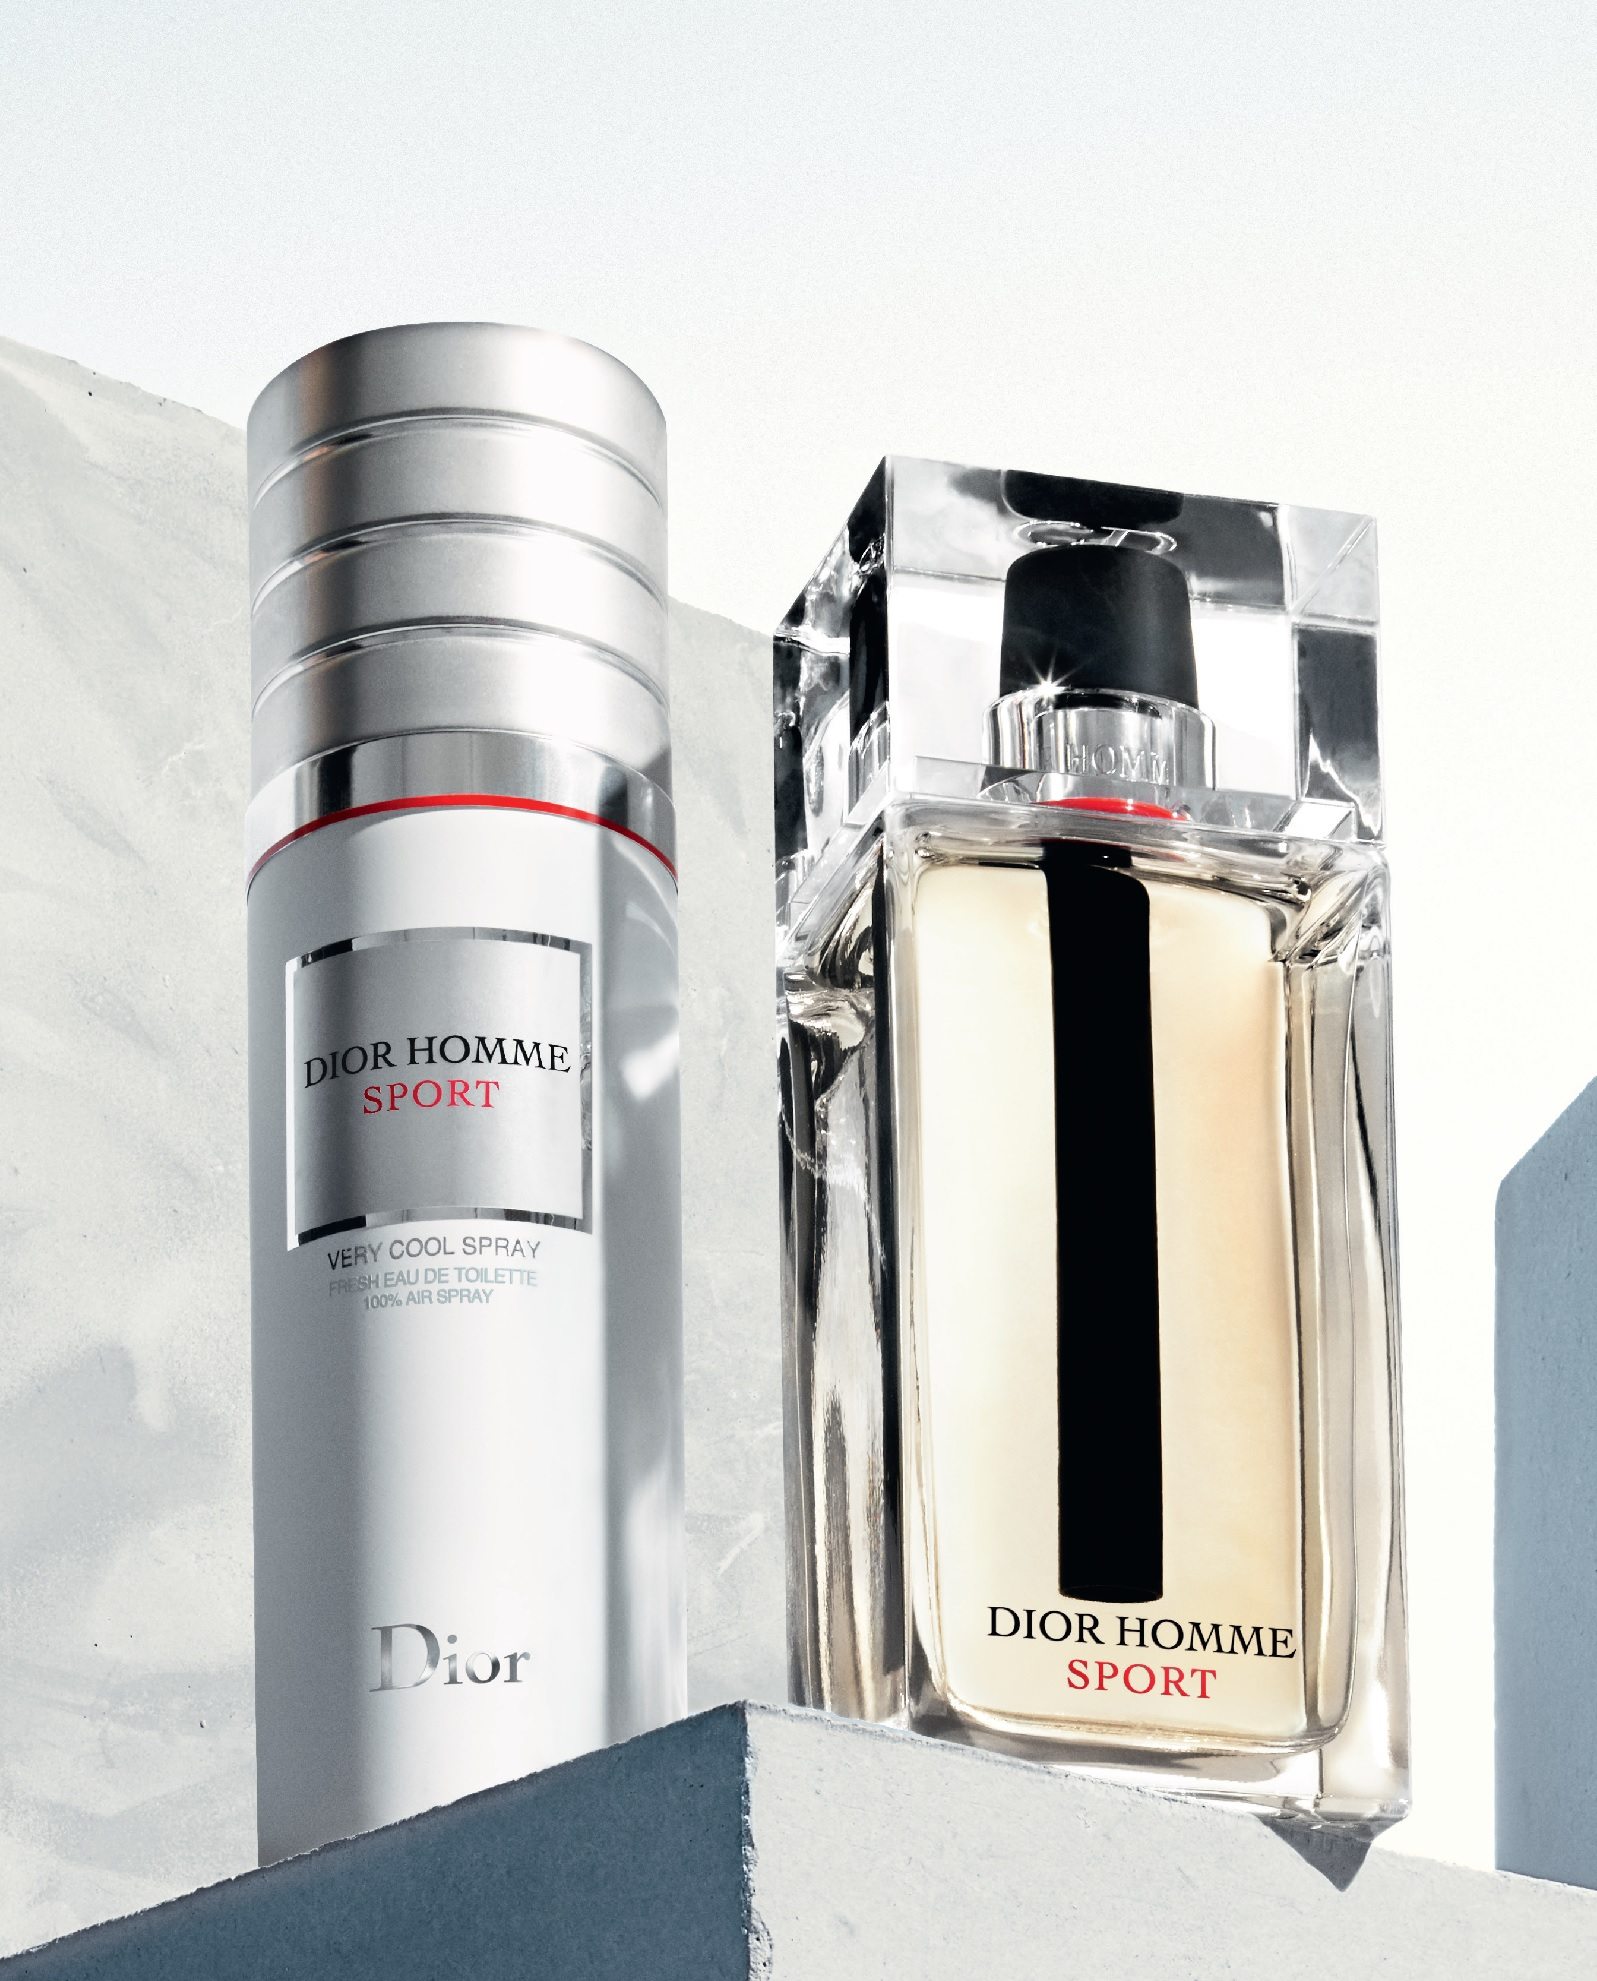 Dior Homme Cologne Vs Sport | The Art of Mike Mignola